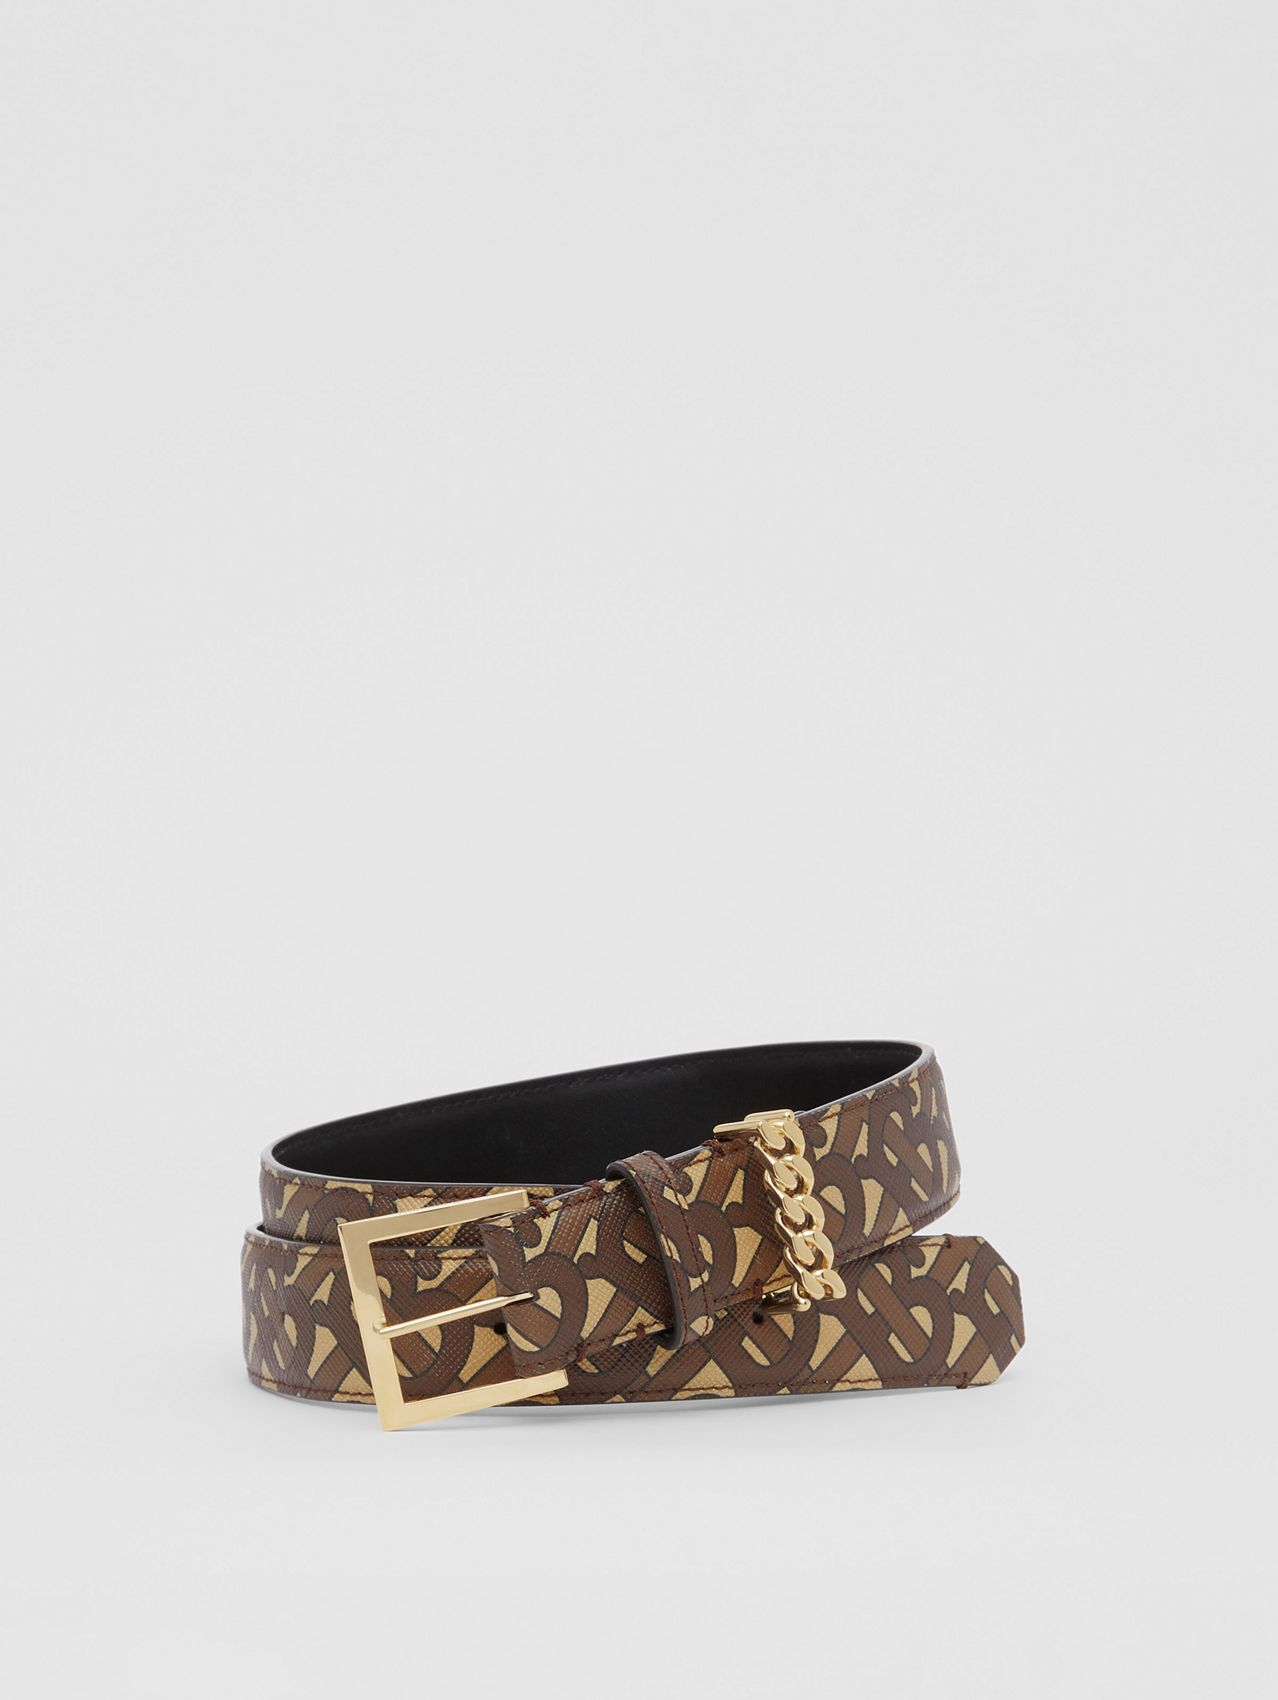 Chain Detail Monogram Print E-canvas Belt in Bridle Brown